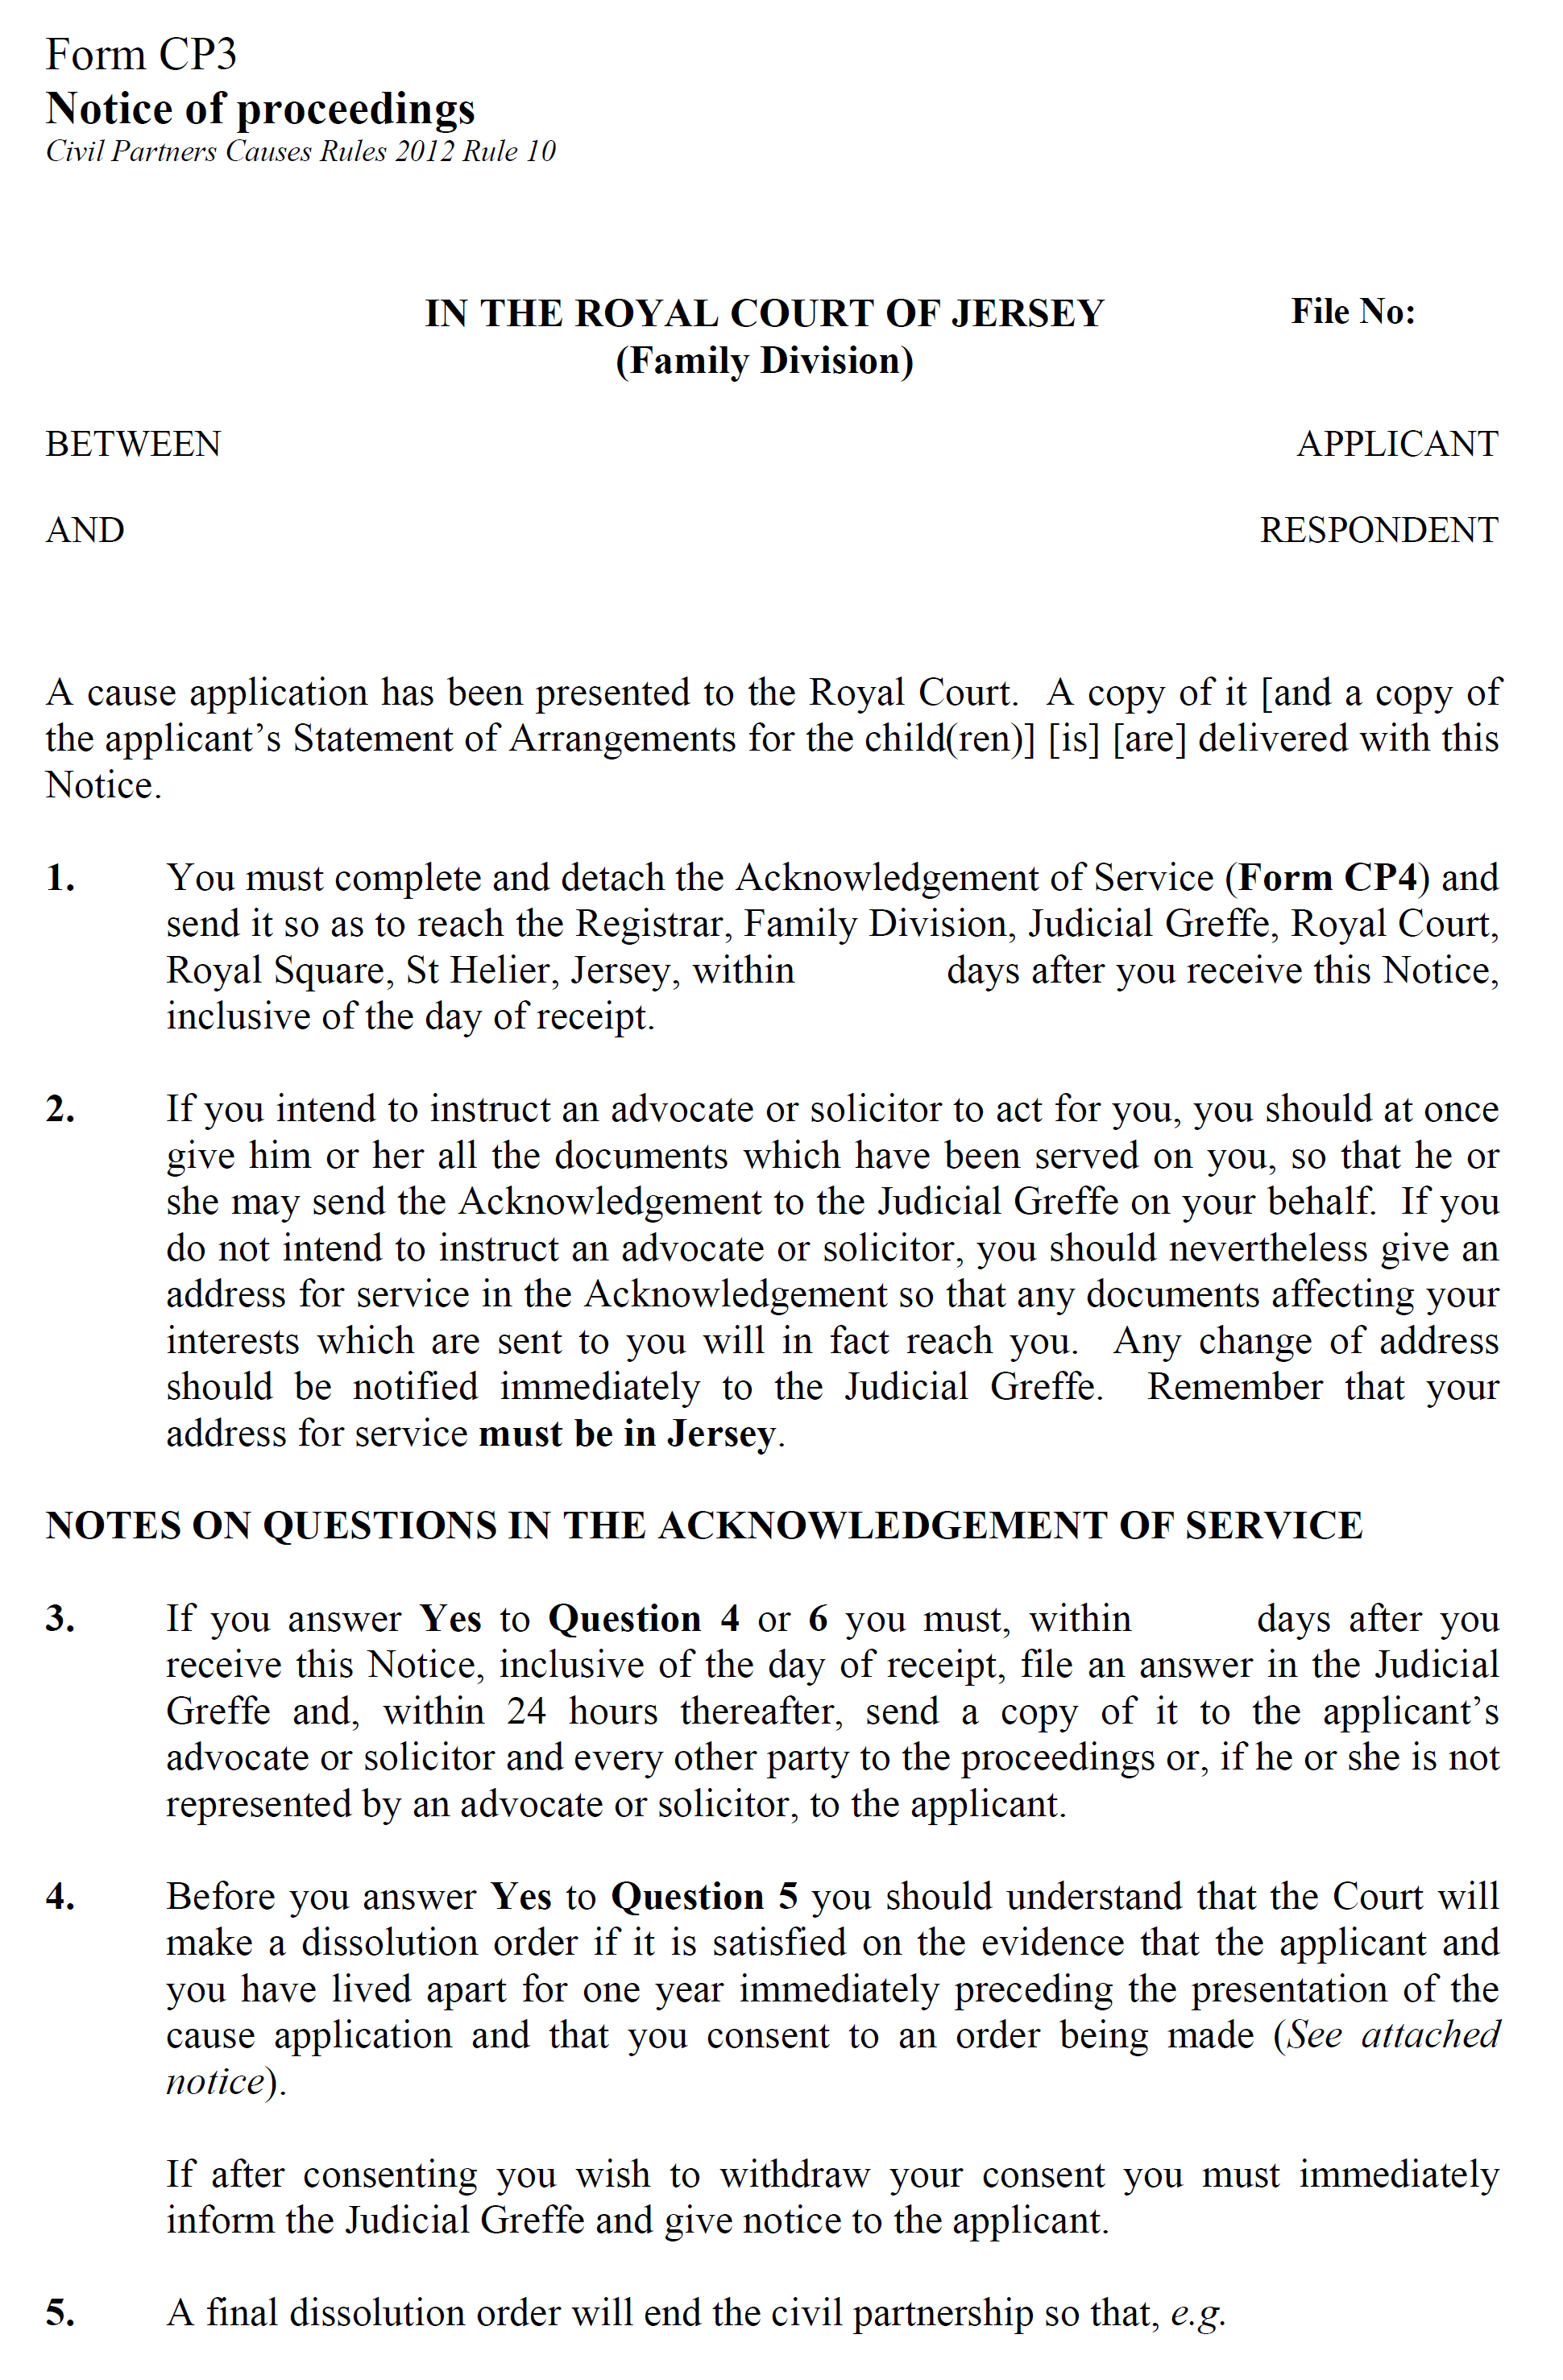 Form CP3 - Notice of proceedings